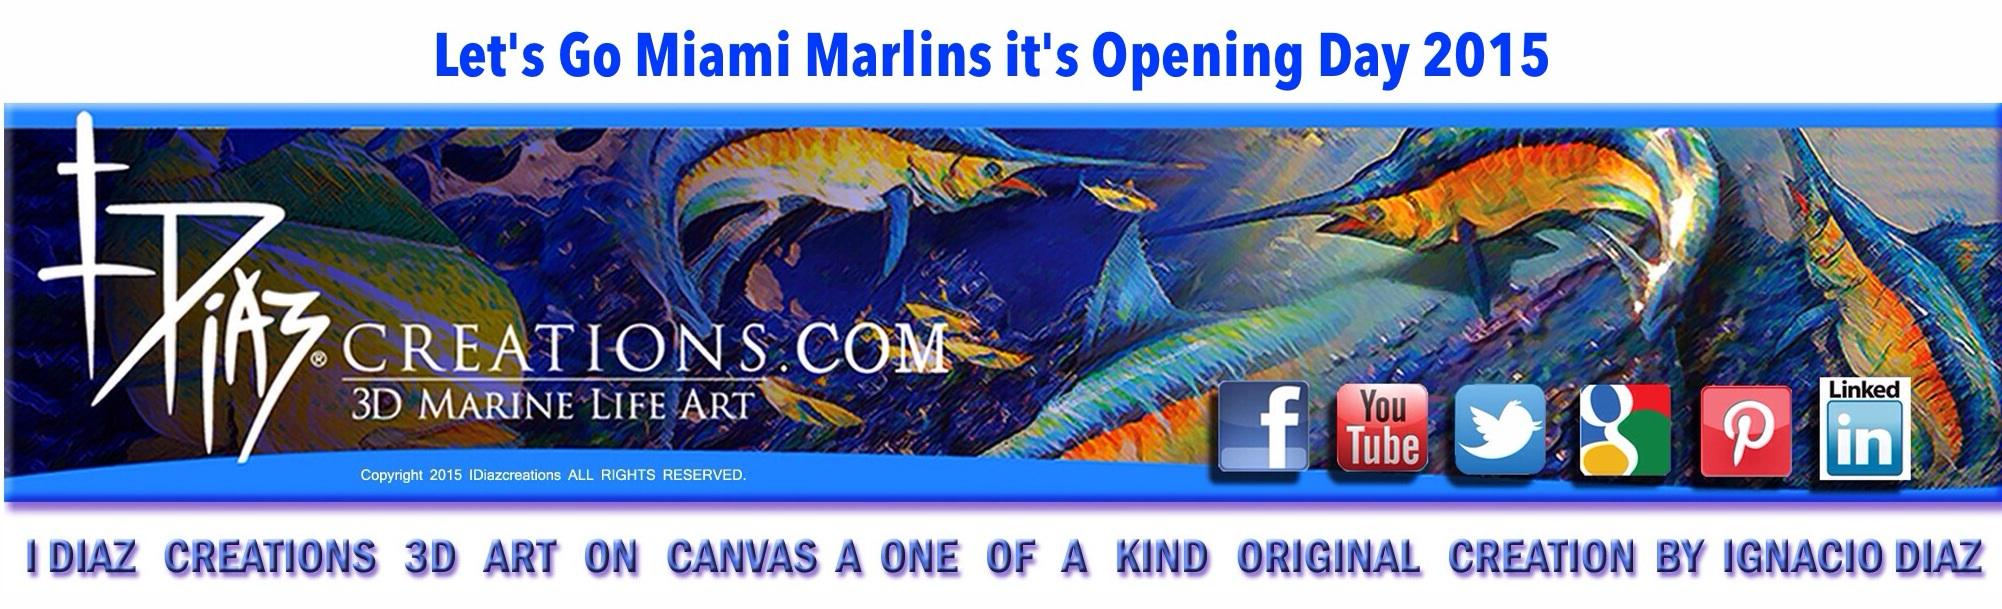 @Marlins @idiazcreations the rain is water & life for the for the @Marlins #LetsGoFish http://t.co/oNJWDaMqxV